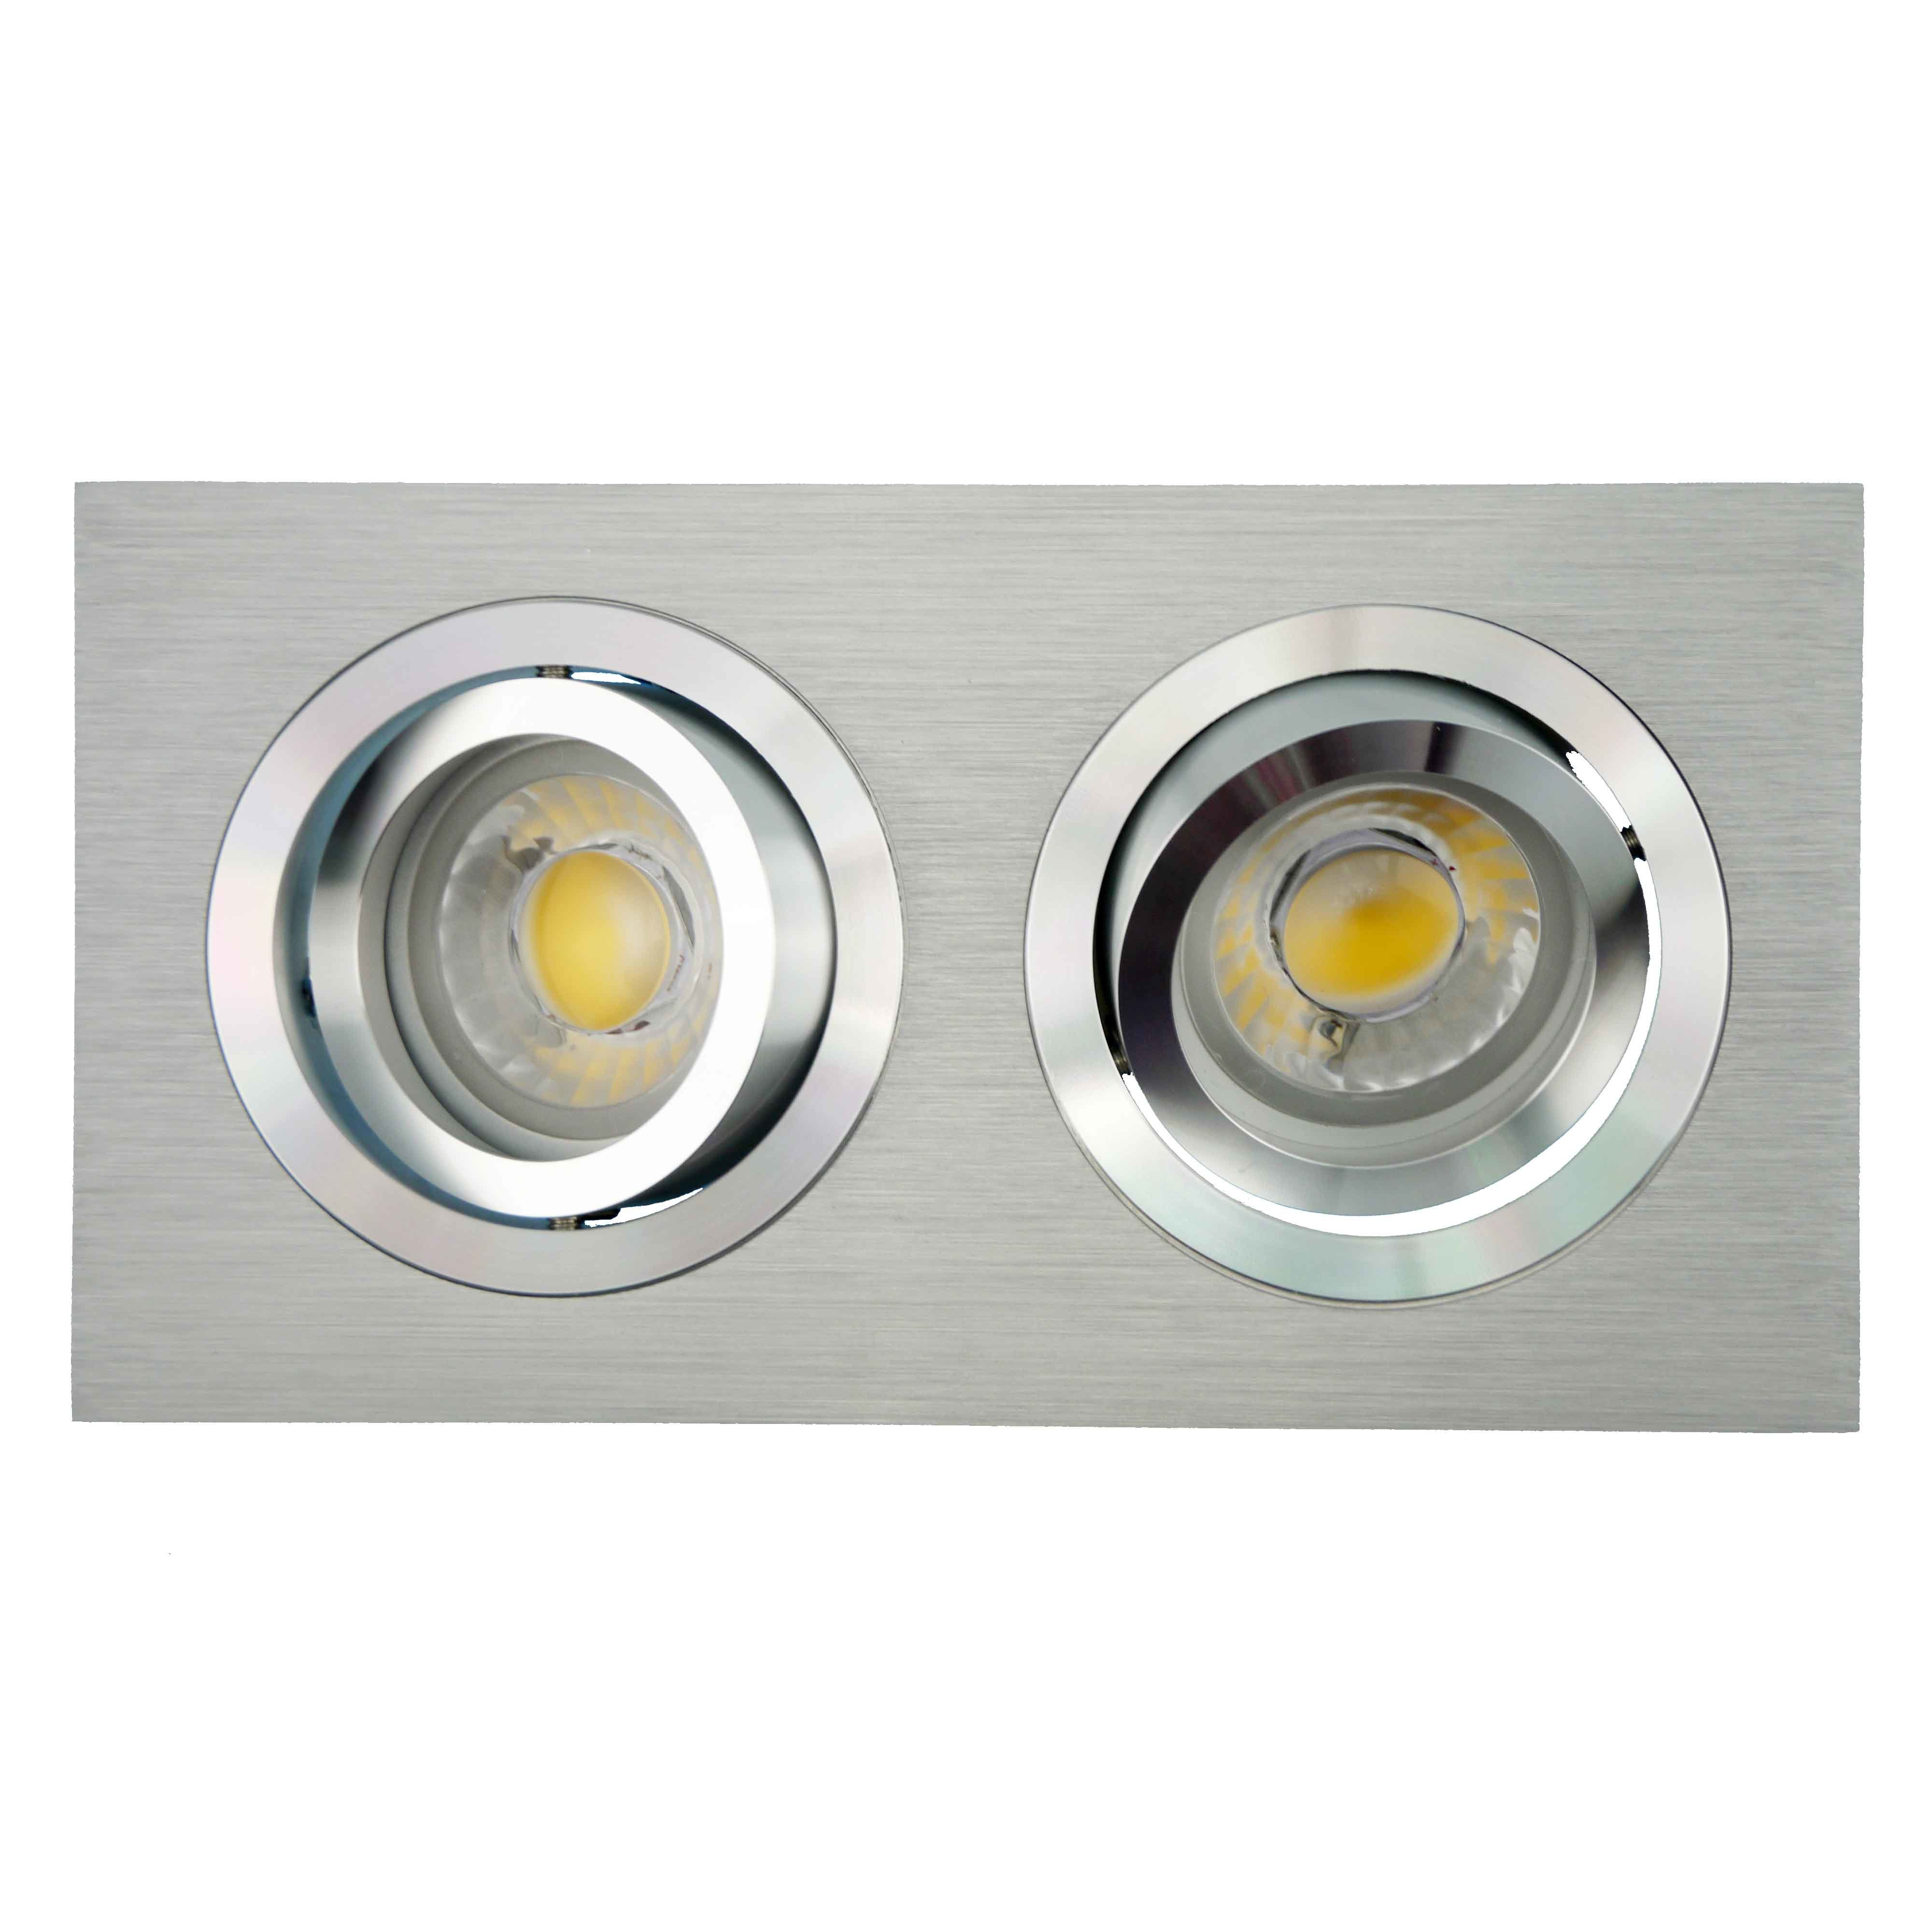 Lathe Aluminum GU10 MR16 Multi-Angle 2 Units Square Tilt Recessed LED Downlight (LT2301-2)